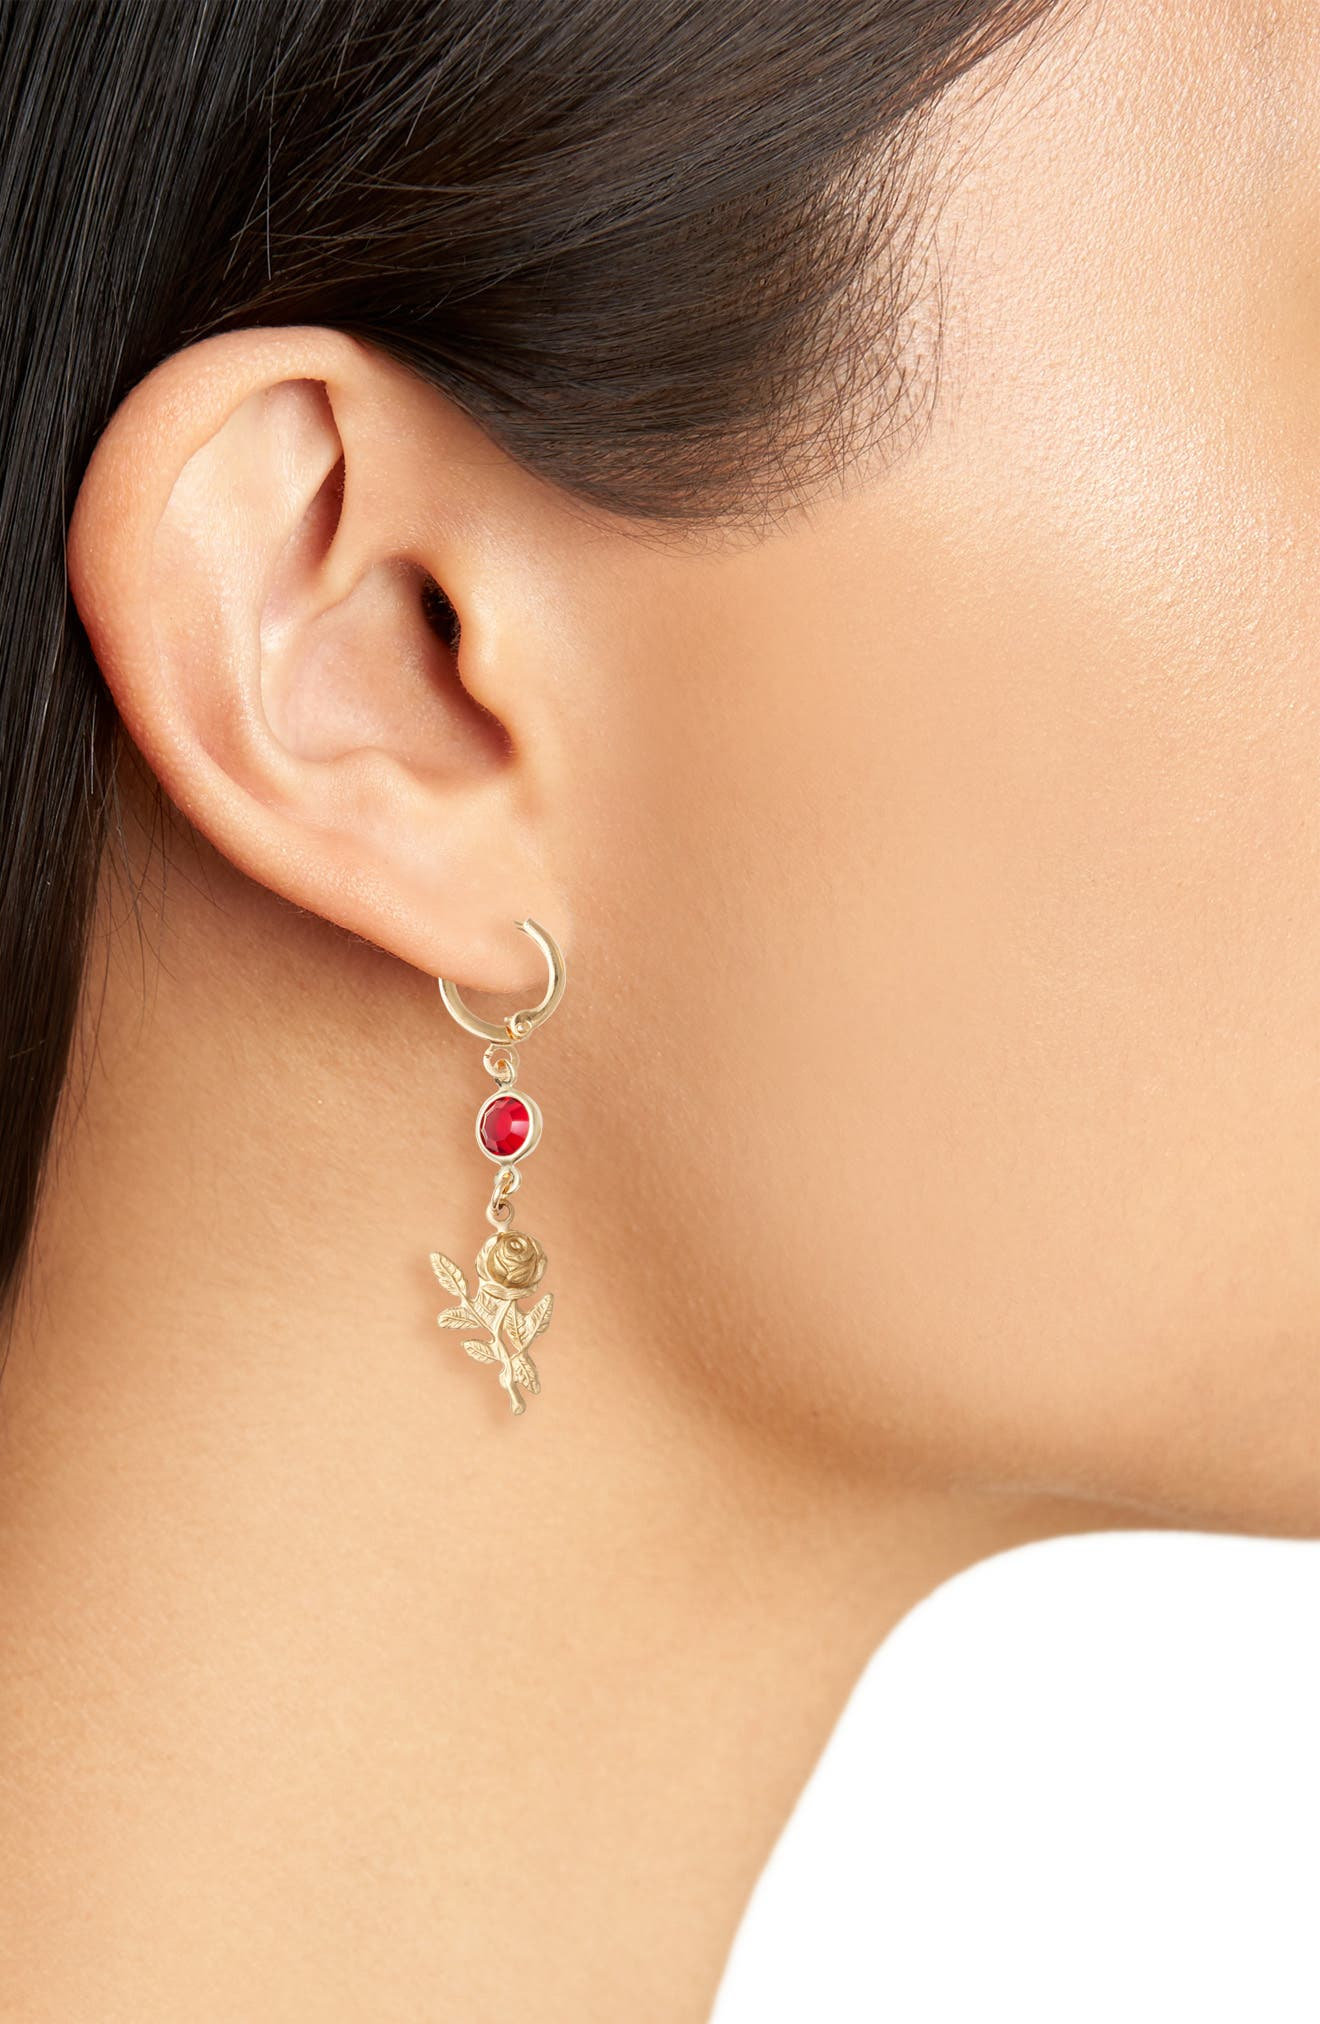 Rose Drop Earrings,                             Alternate thumbnail 2, color,                             710